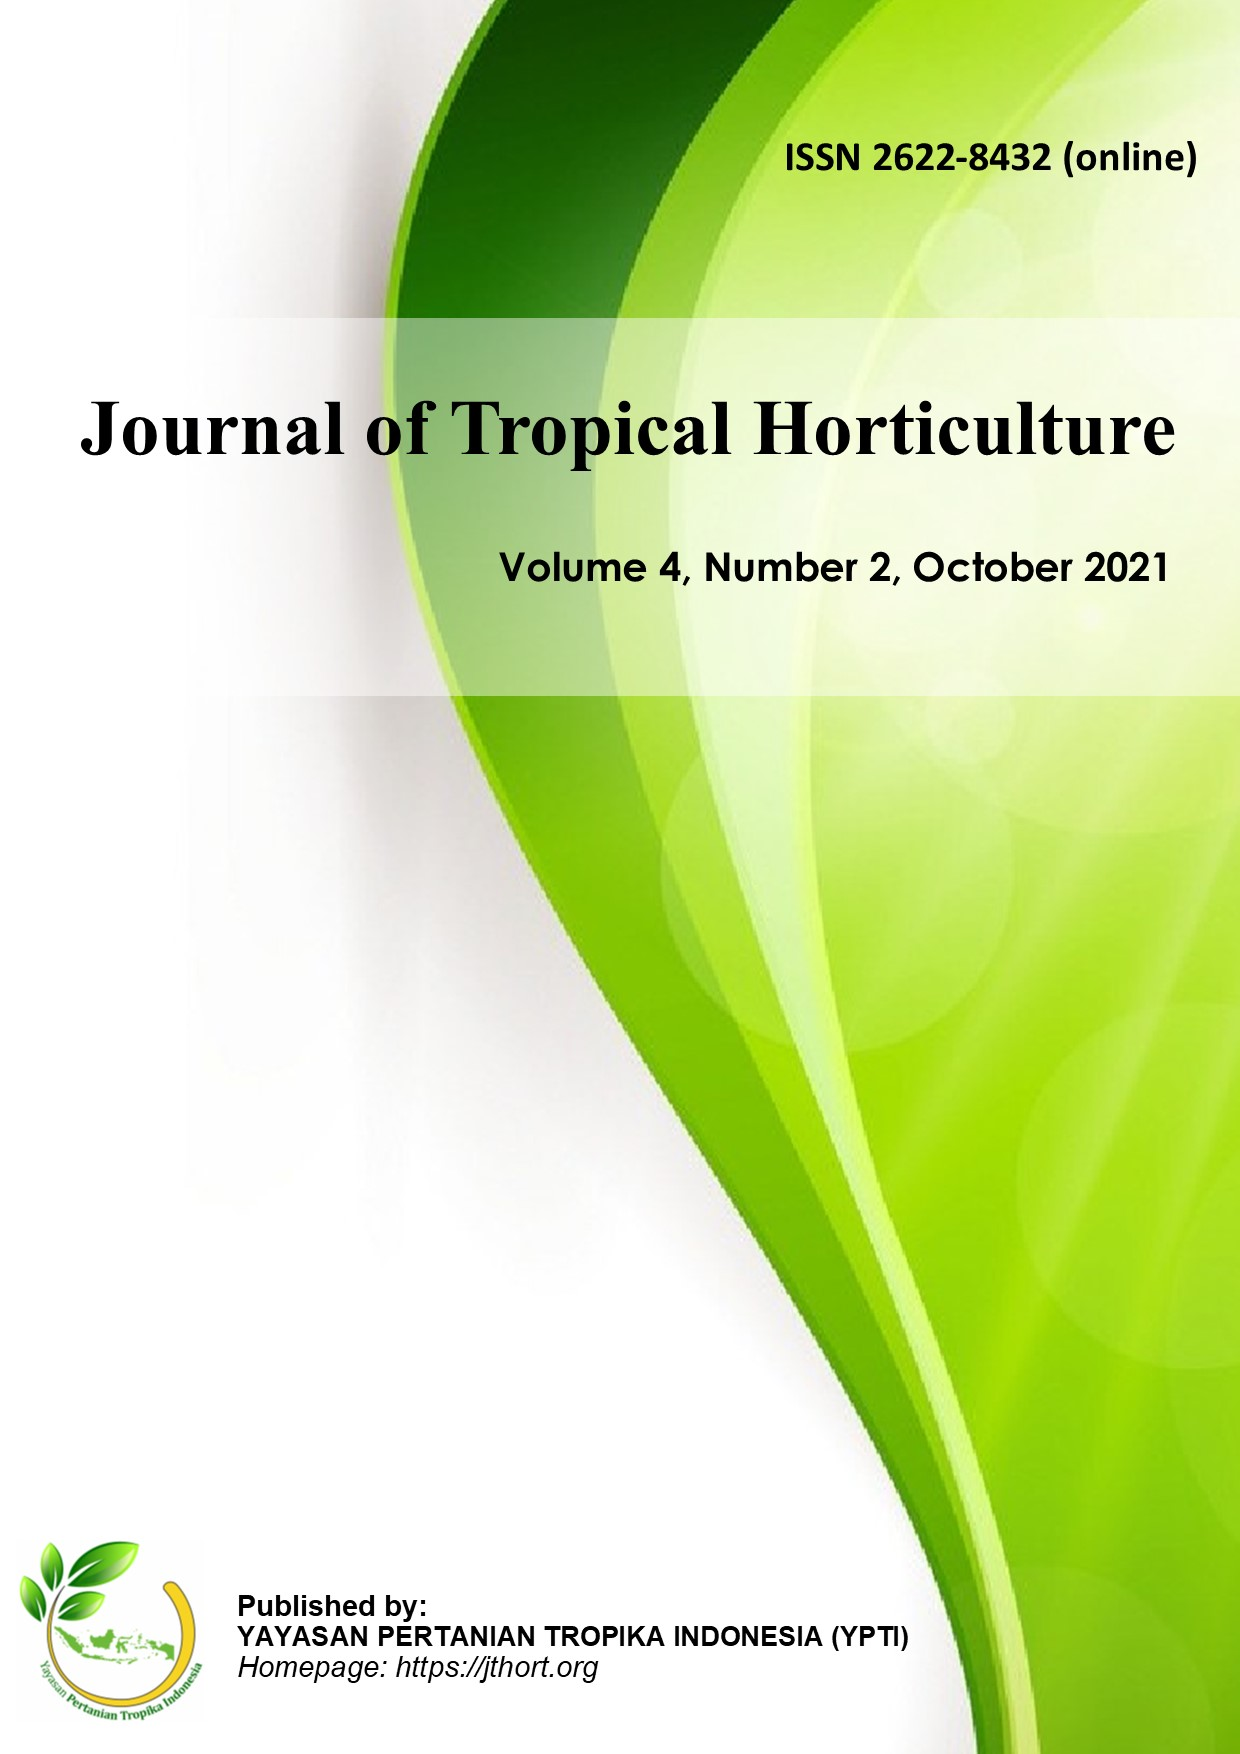 Journal of Tropical Horticulture